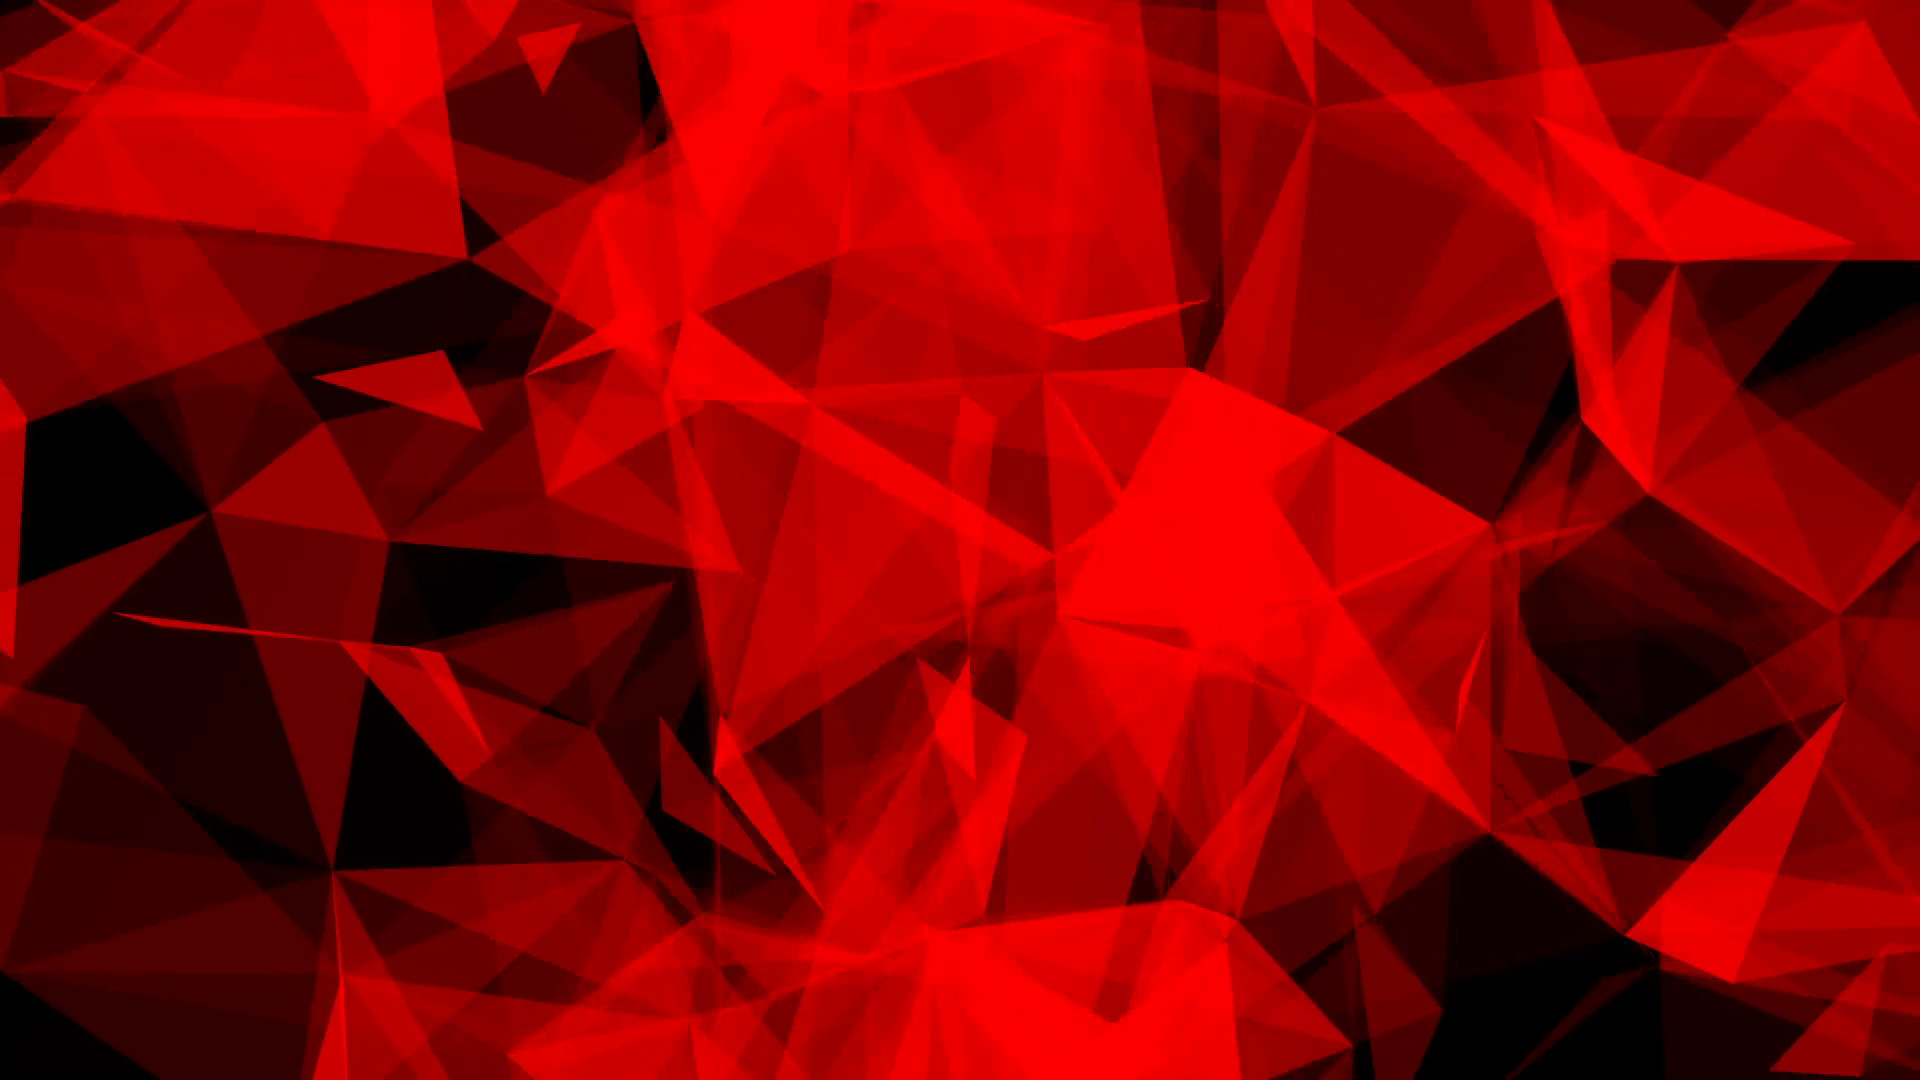 Red and Black Abstract Backgrounds  WallpaperTag